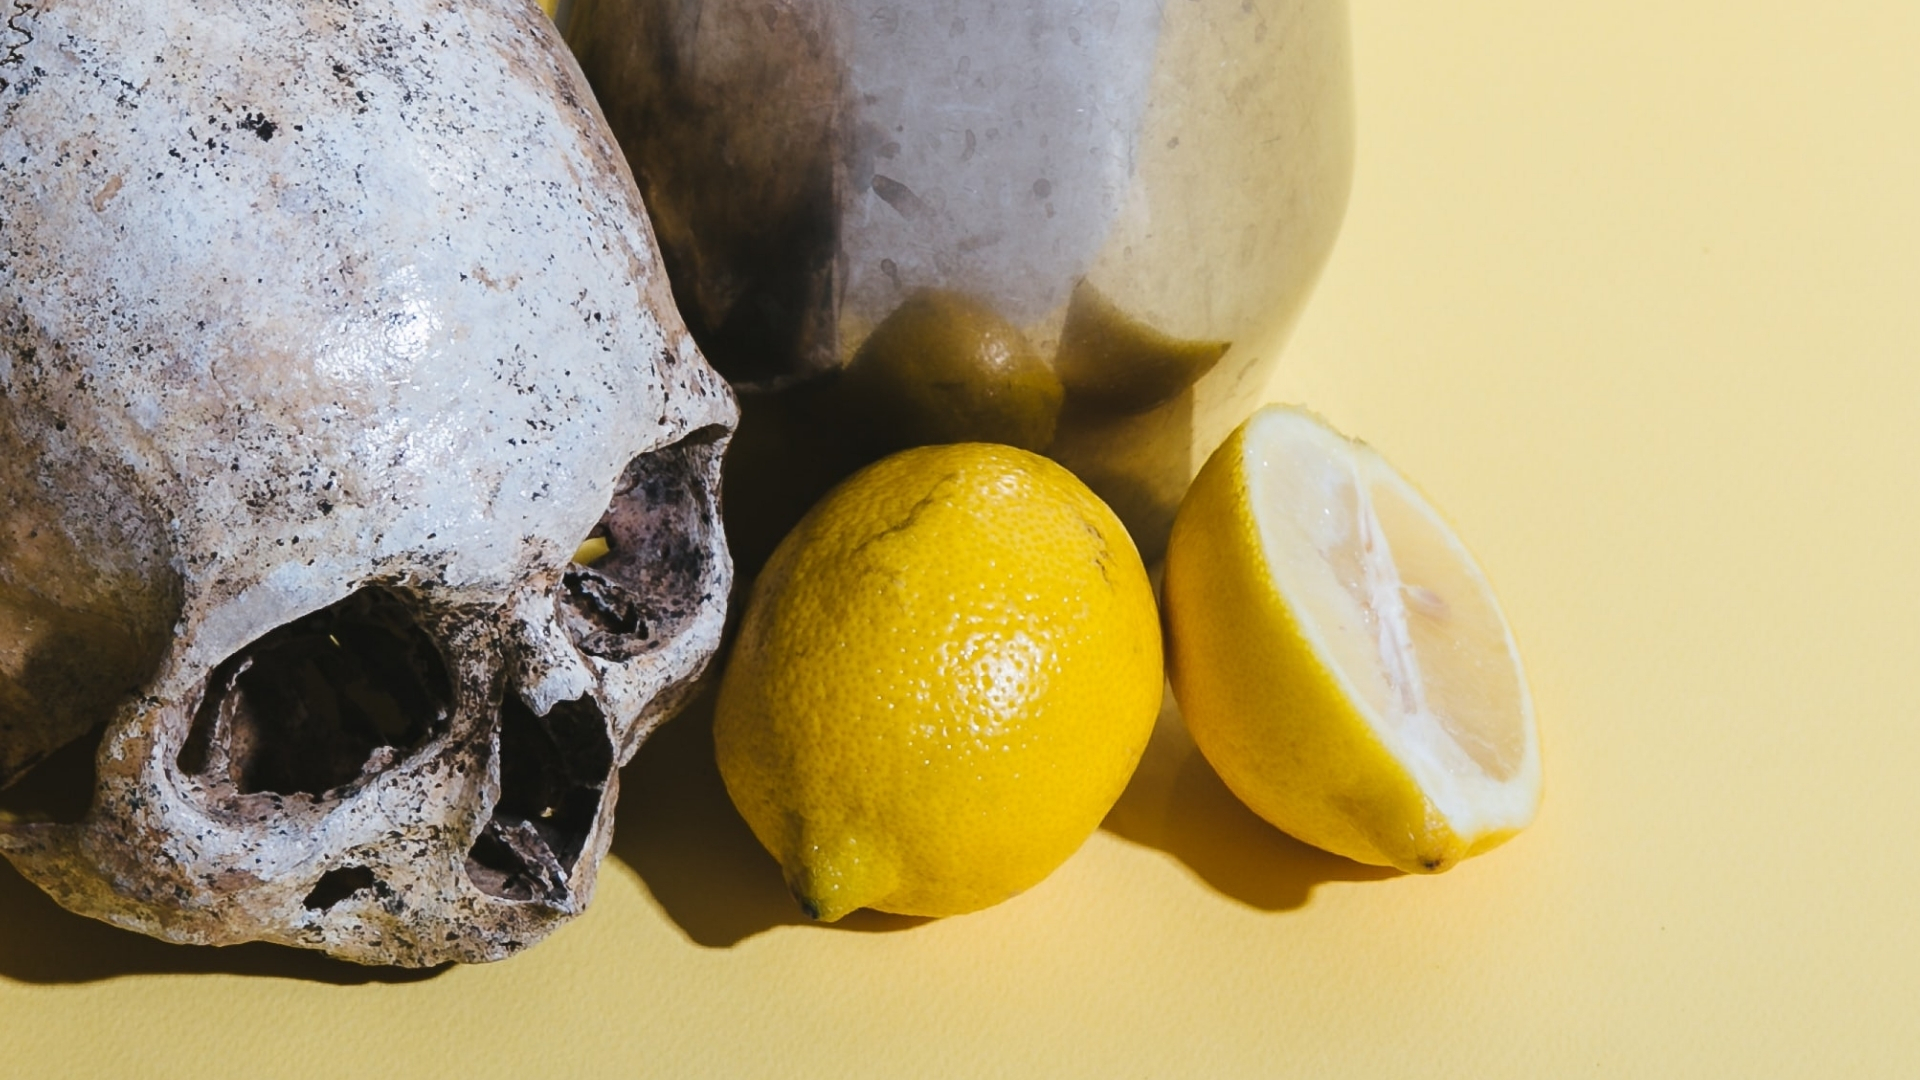 What Makes Christian Cults dangerous? Fresh lemons with a silver jug and a skull - death and sour fruit